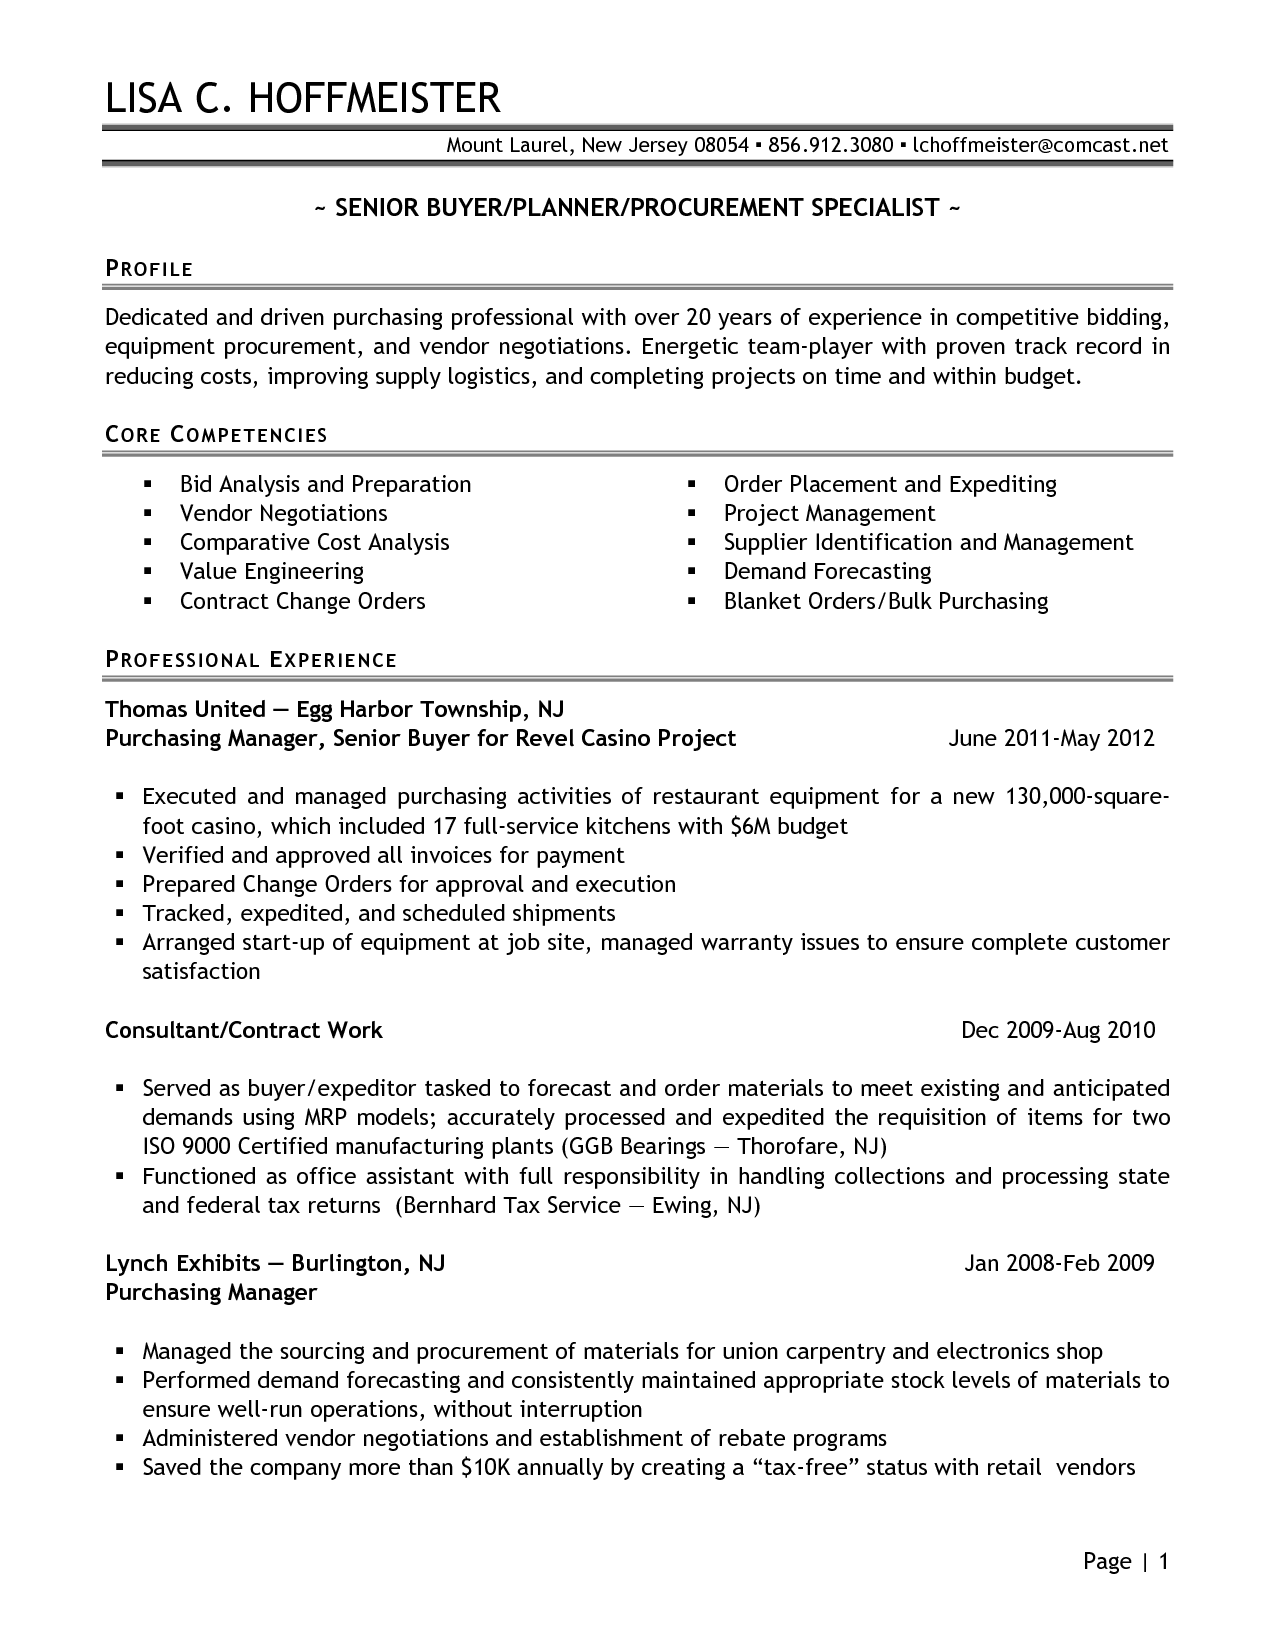 senior logistic management resume | Senior Buyer Purchasing Manager ...